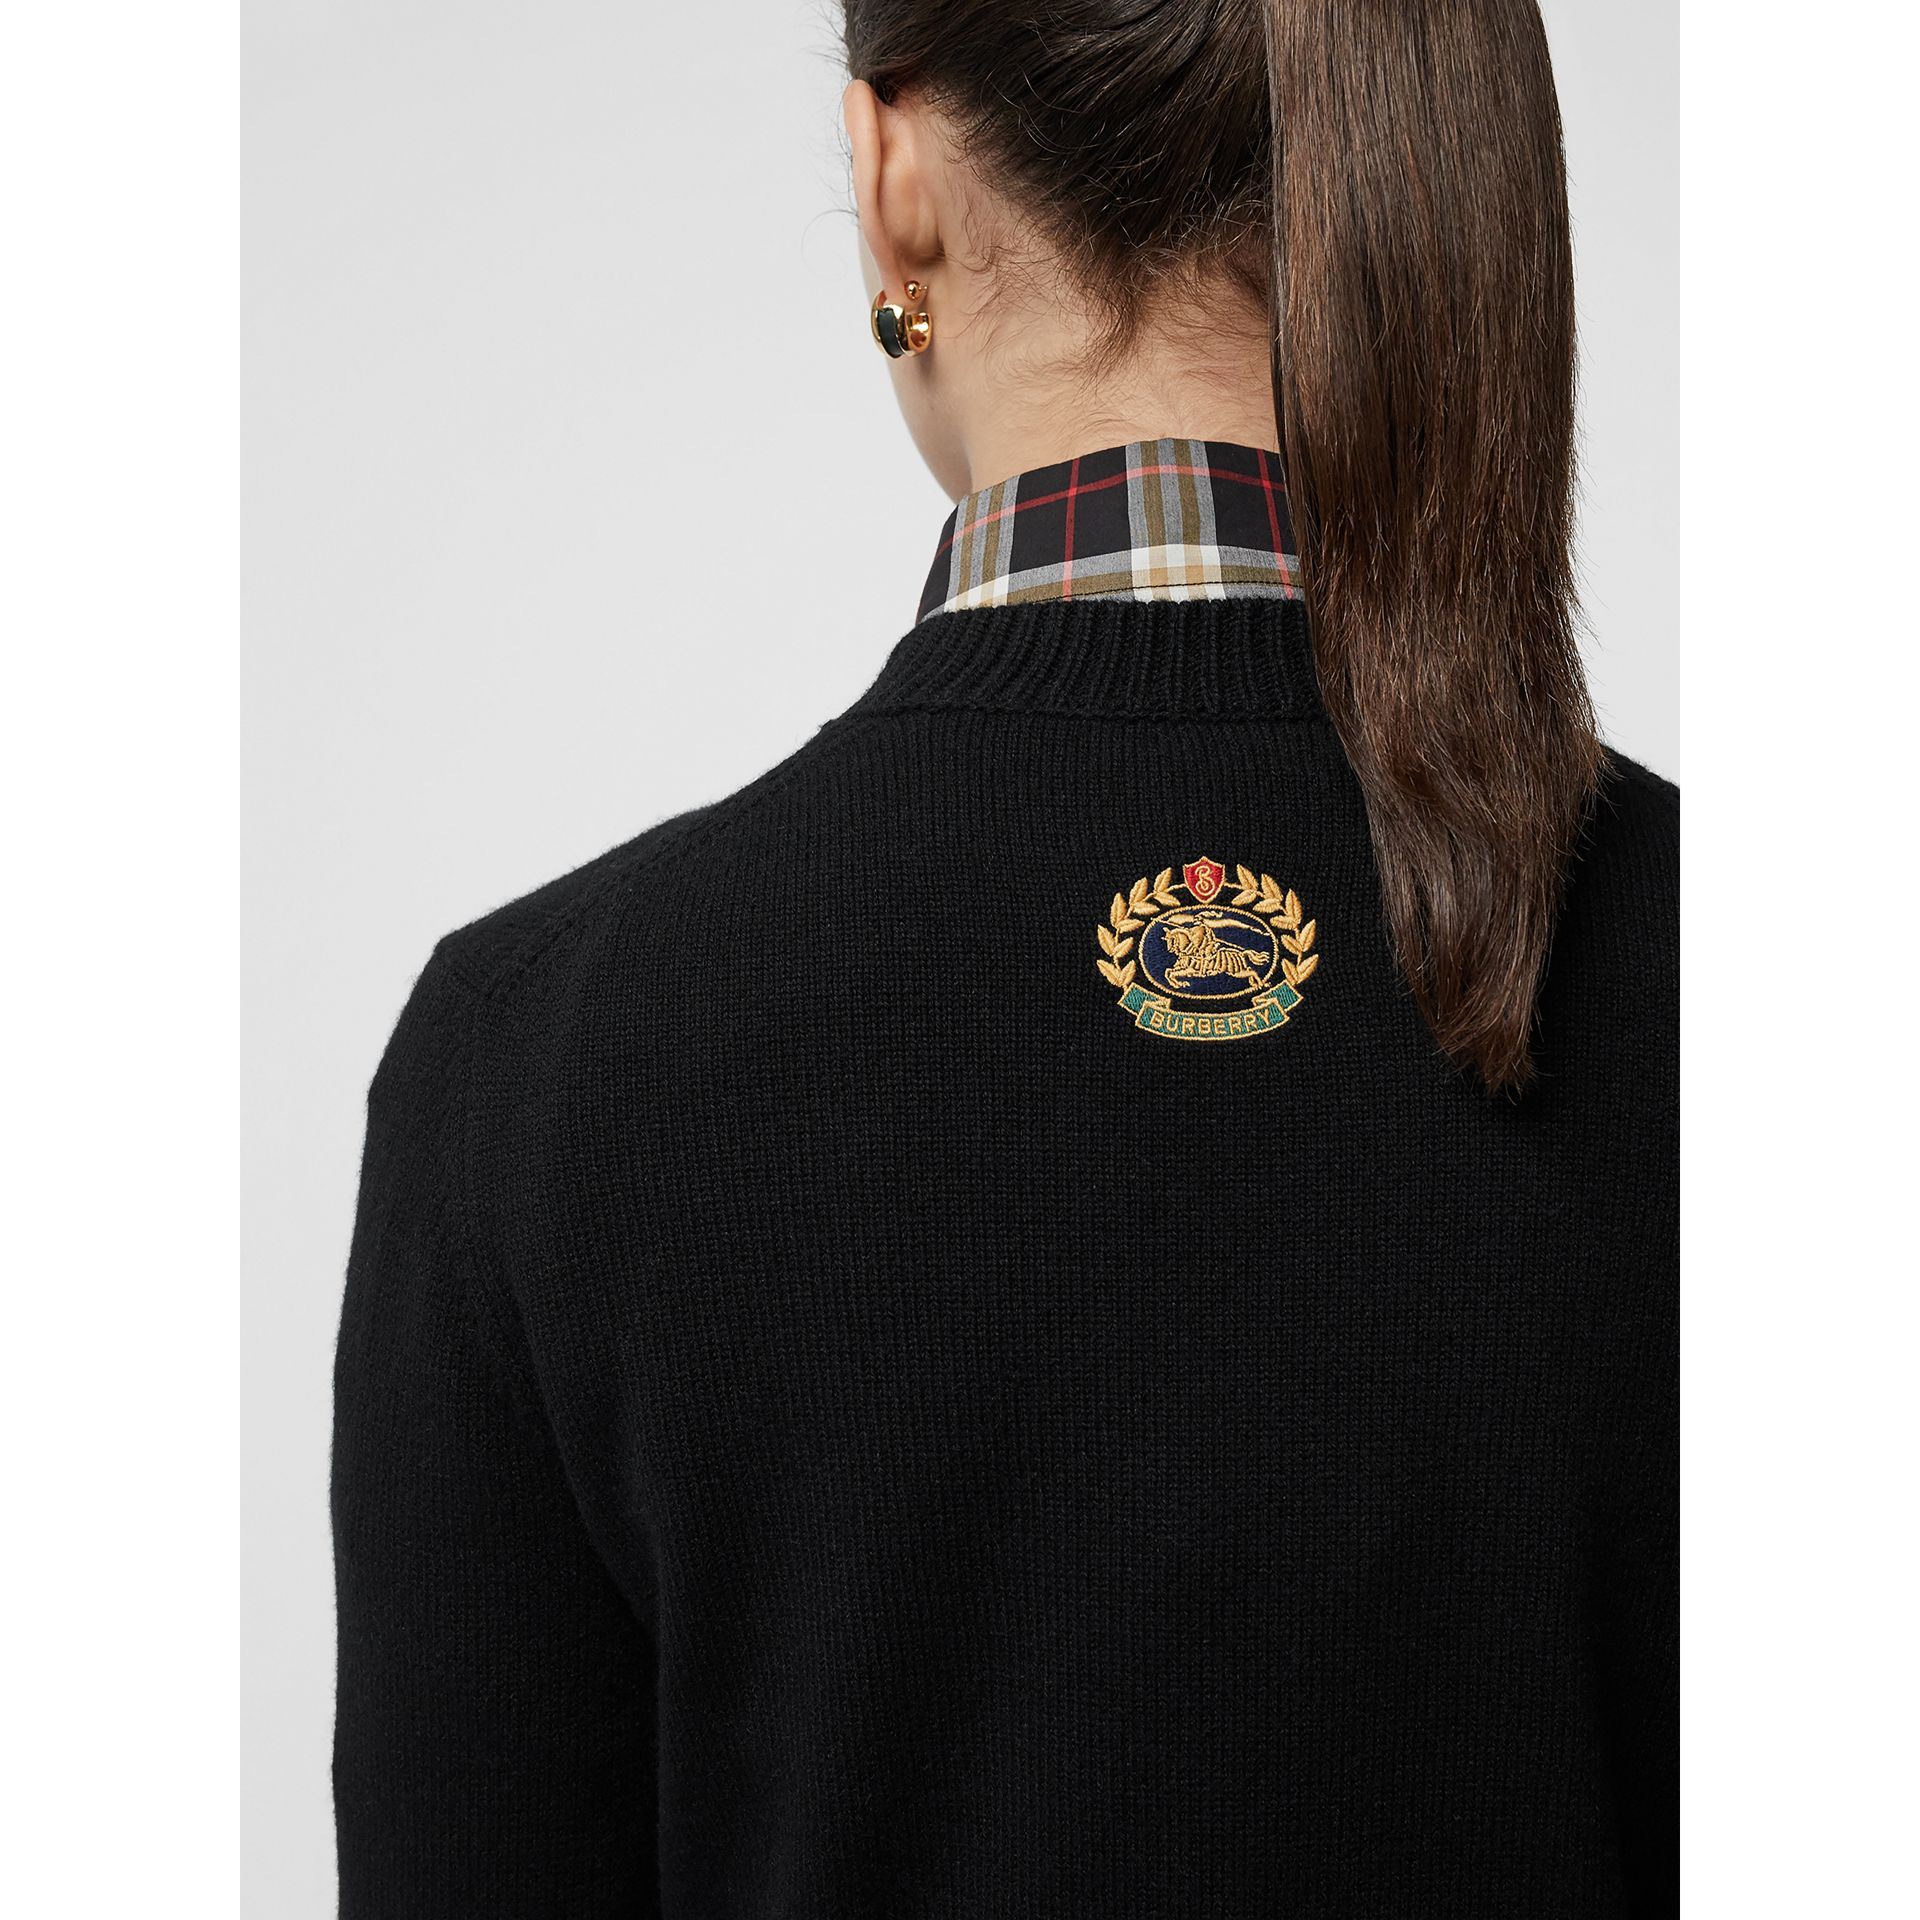 Embroidered Crest Cashmere Sweater in Black - Women | Burberry - gallery image 1